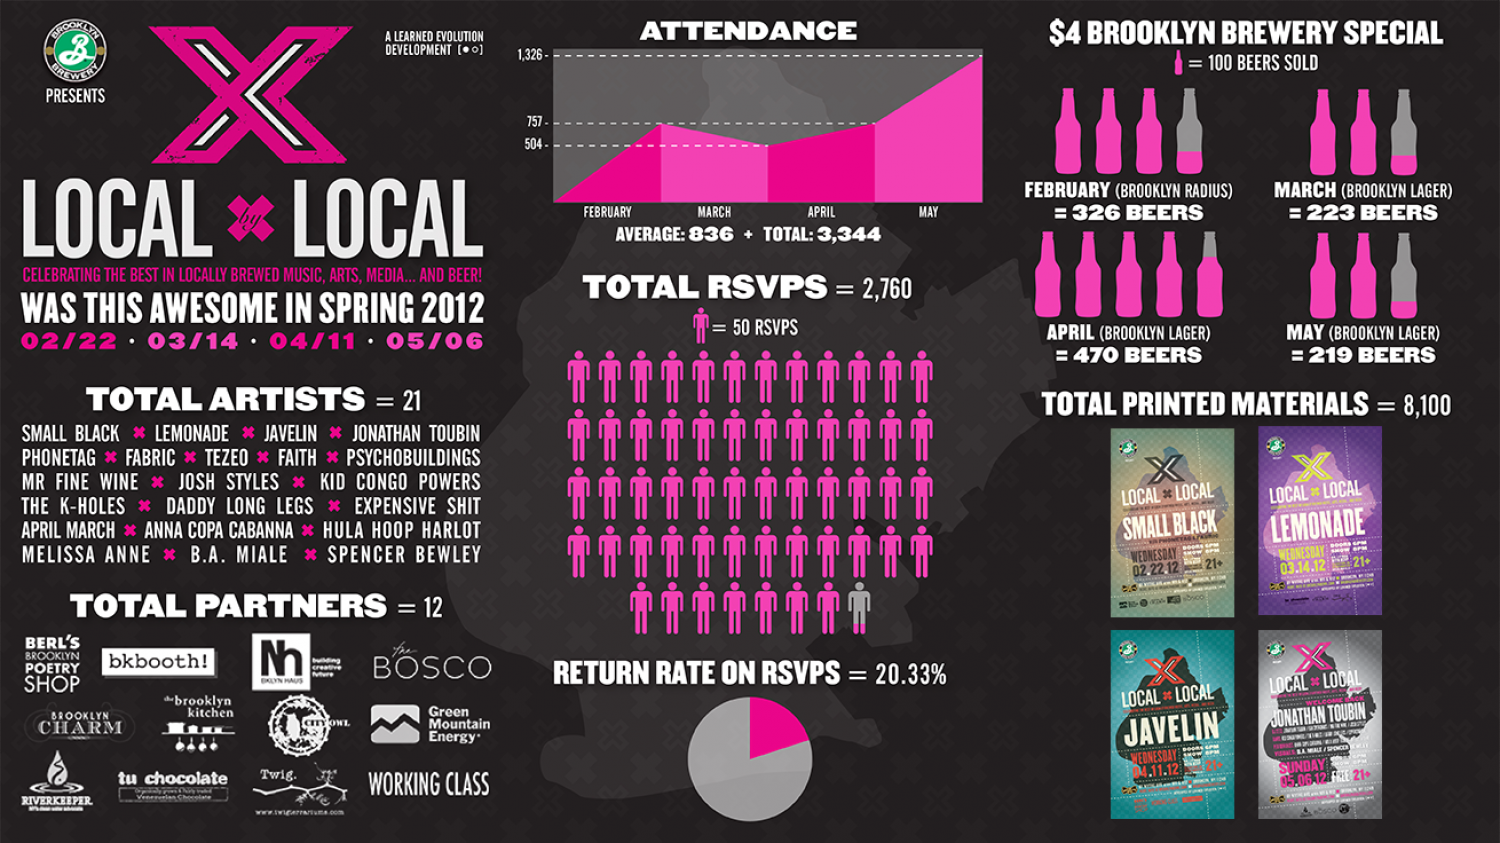 Brooklyn Bowl: Local X Local (Spring 2012) Infographic